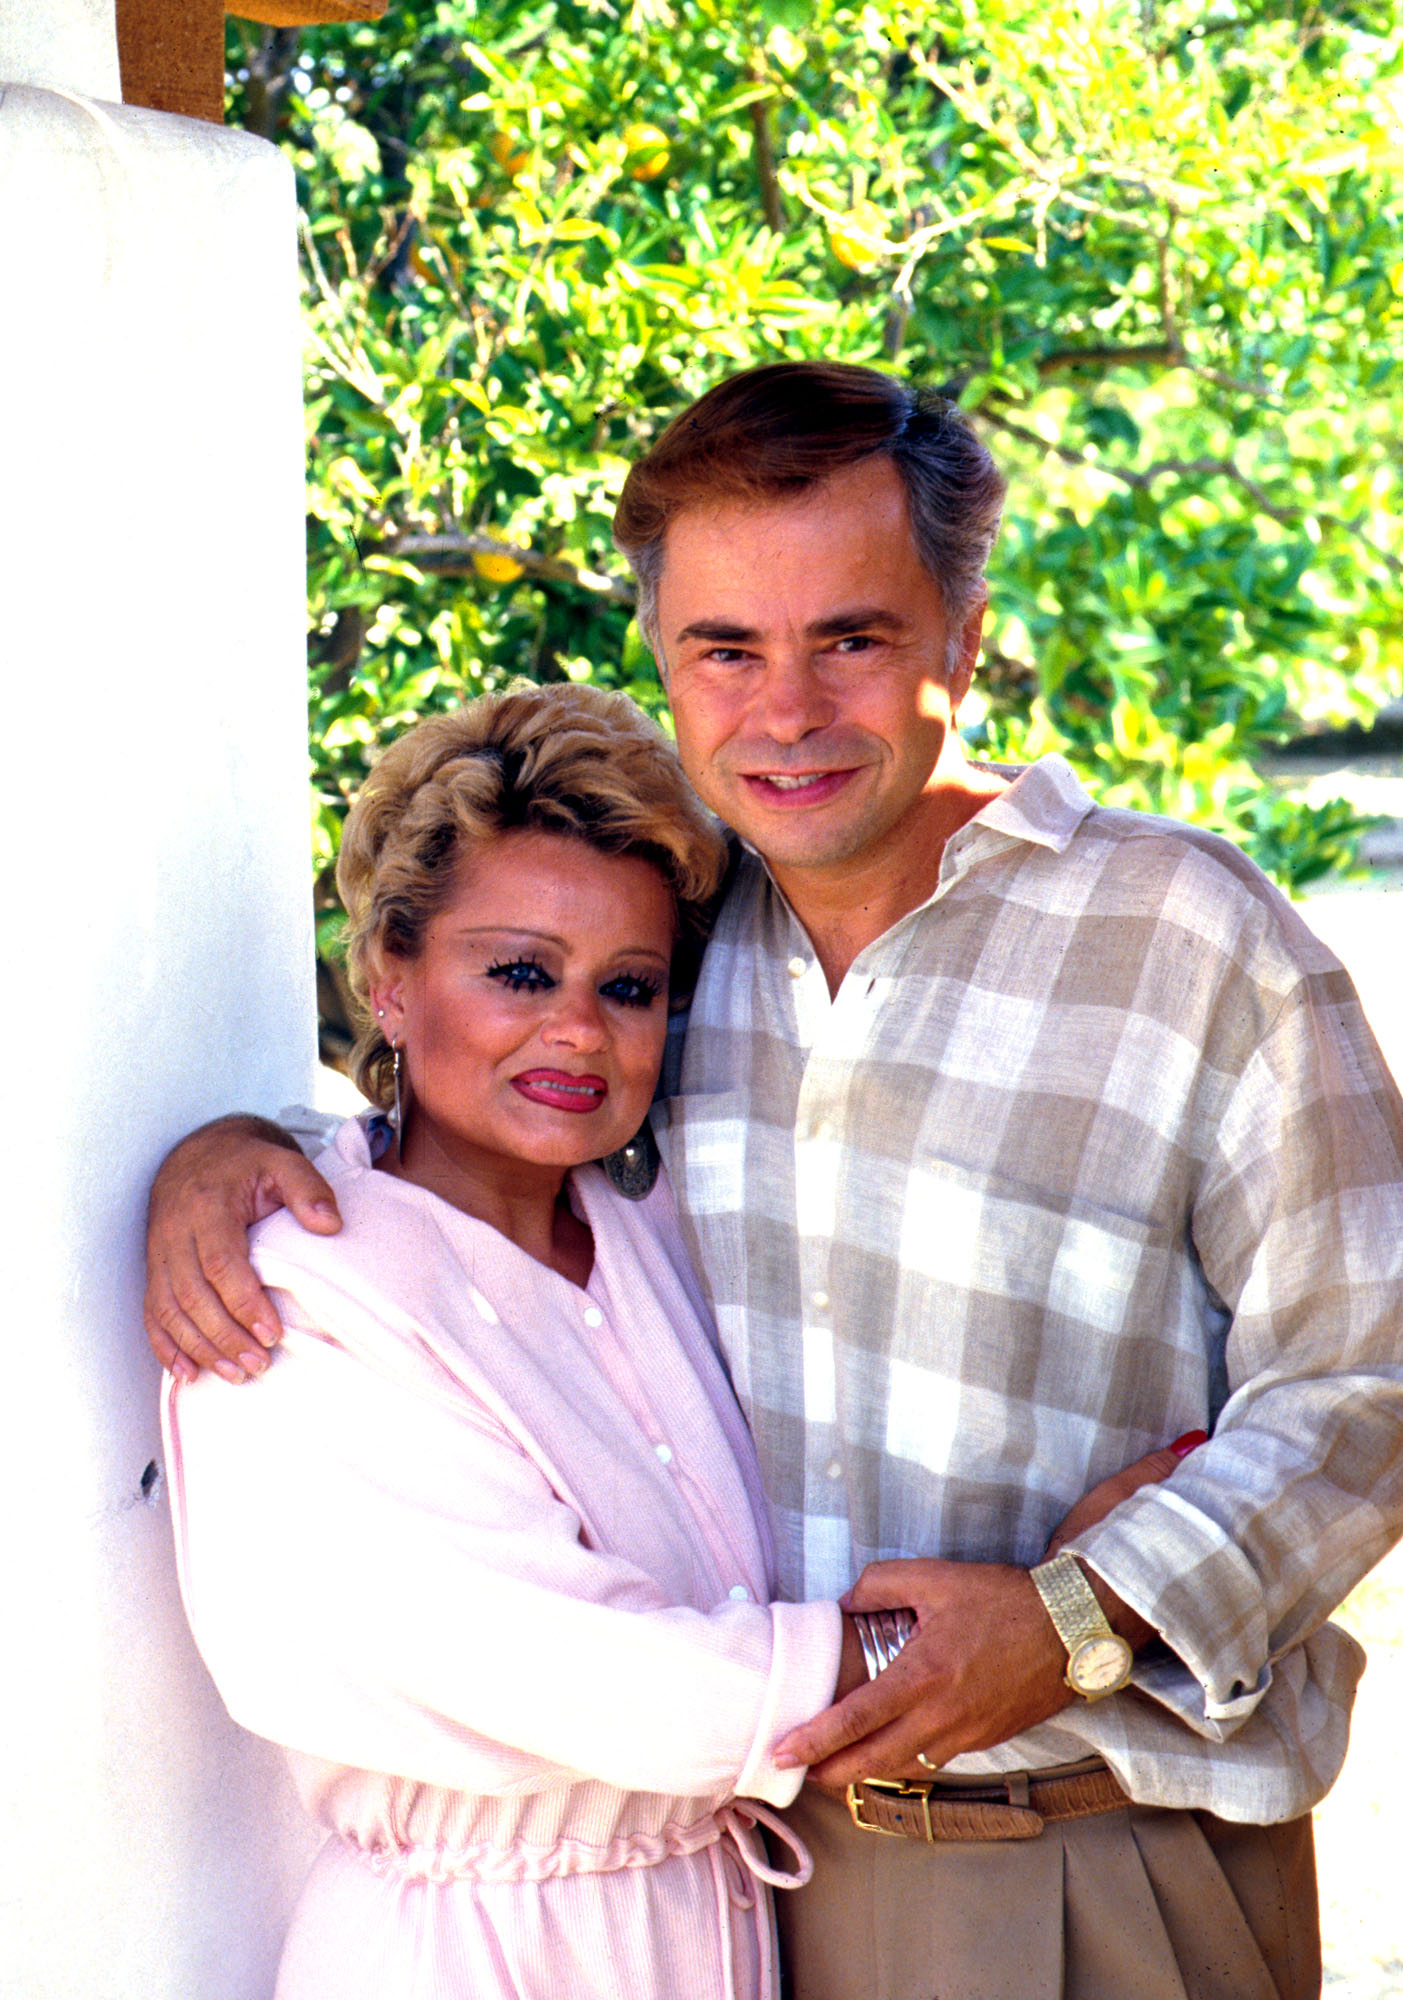 Jim and Tammy Faye Bakker were the king and queen of '80s televangelism